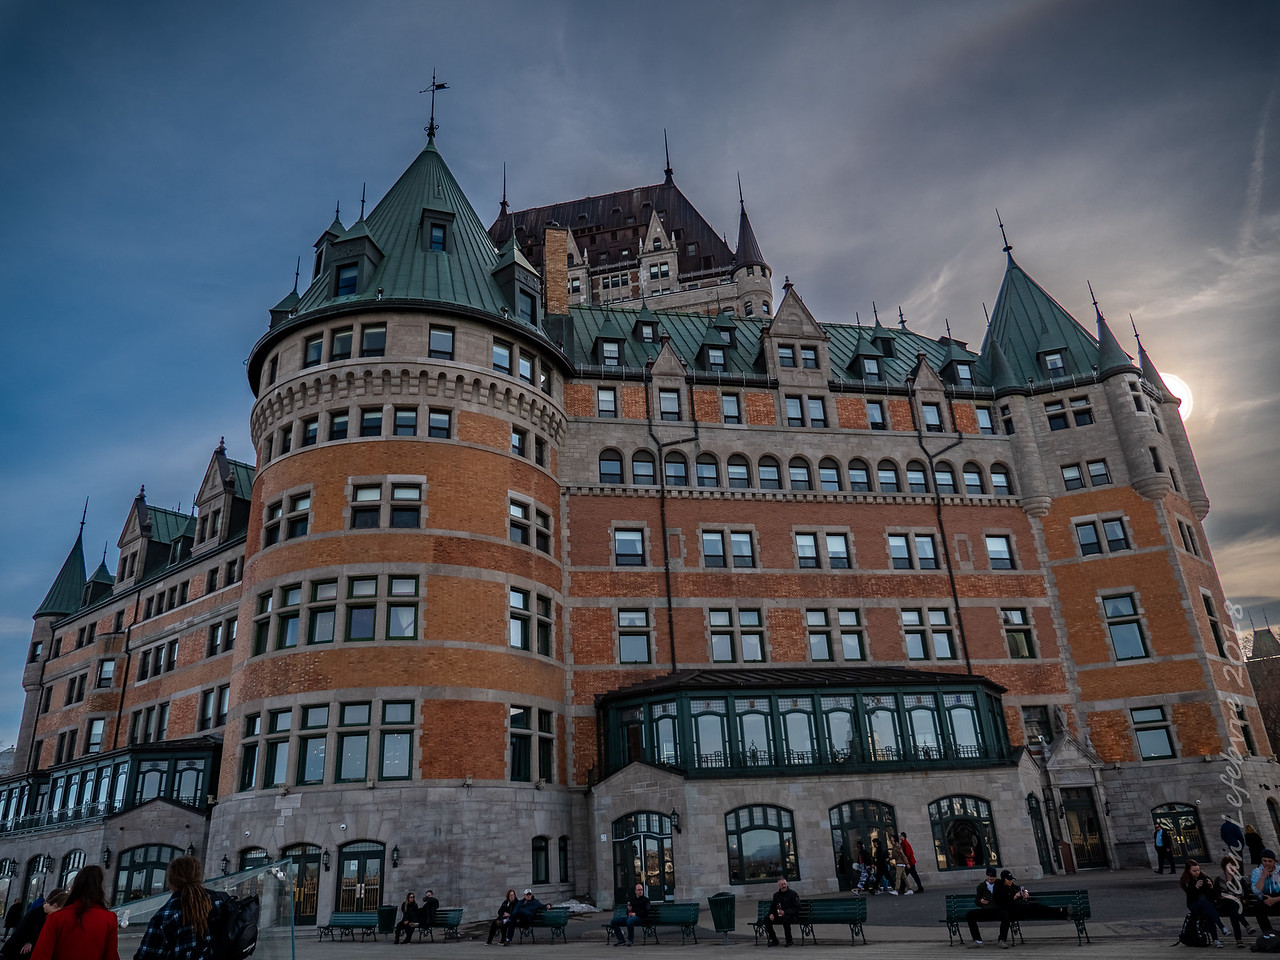 20180423-QuebecCity-015of015-HDR